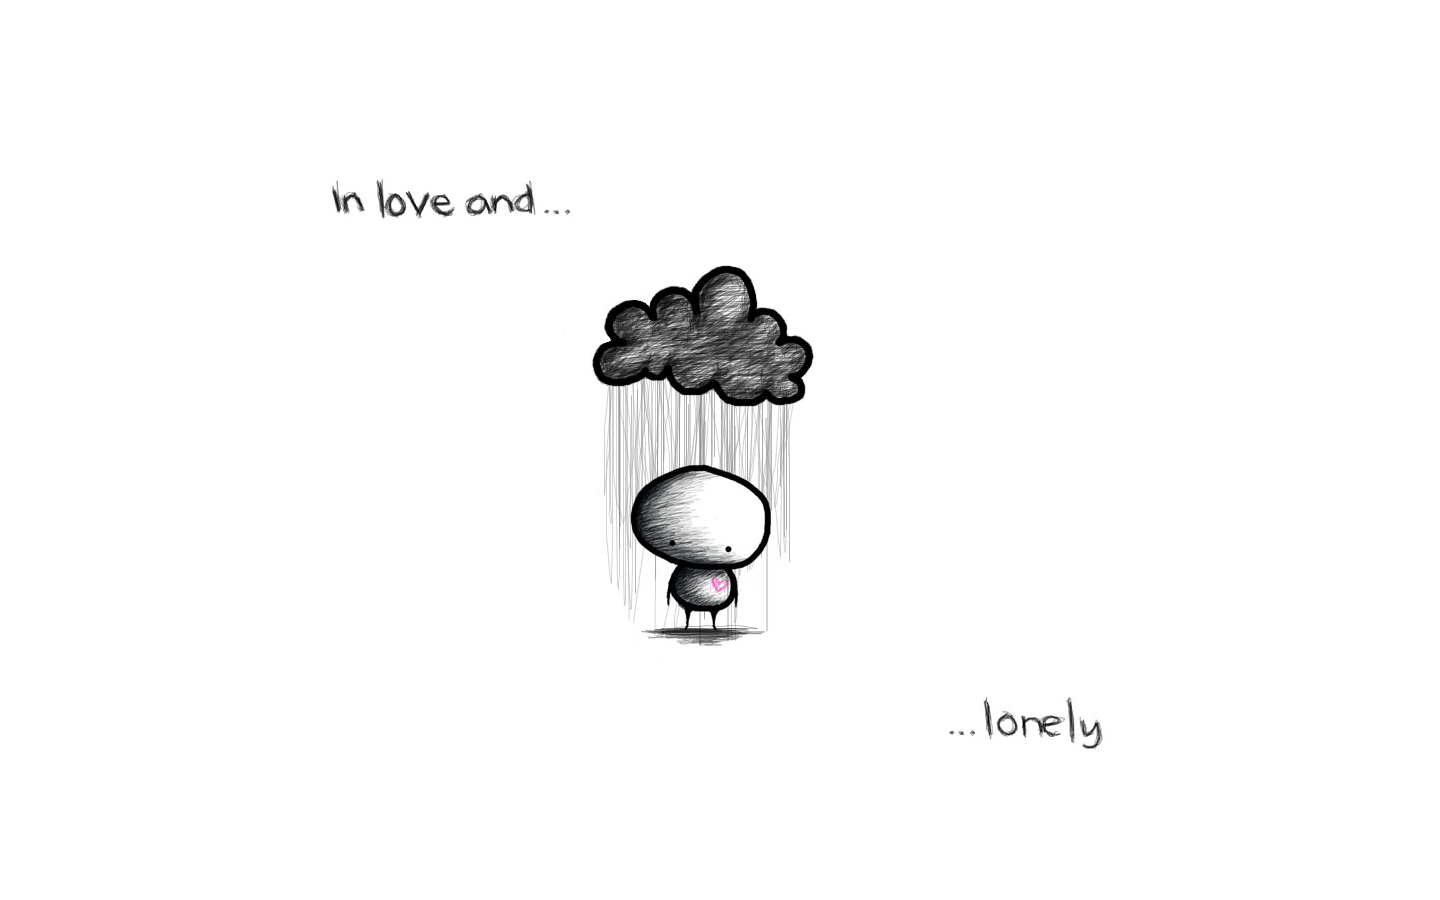 in love and lonely HD Wallpaper